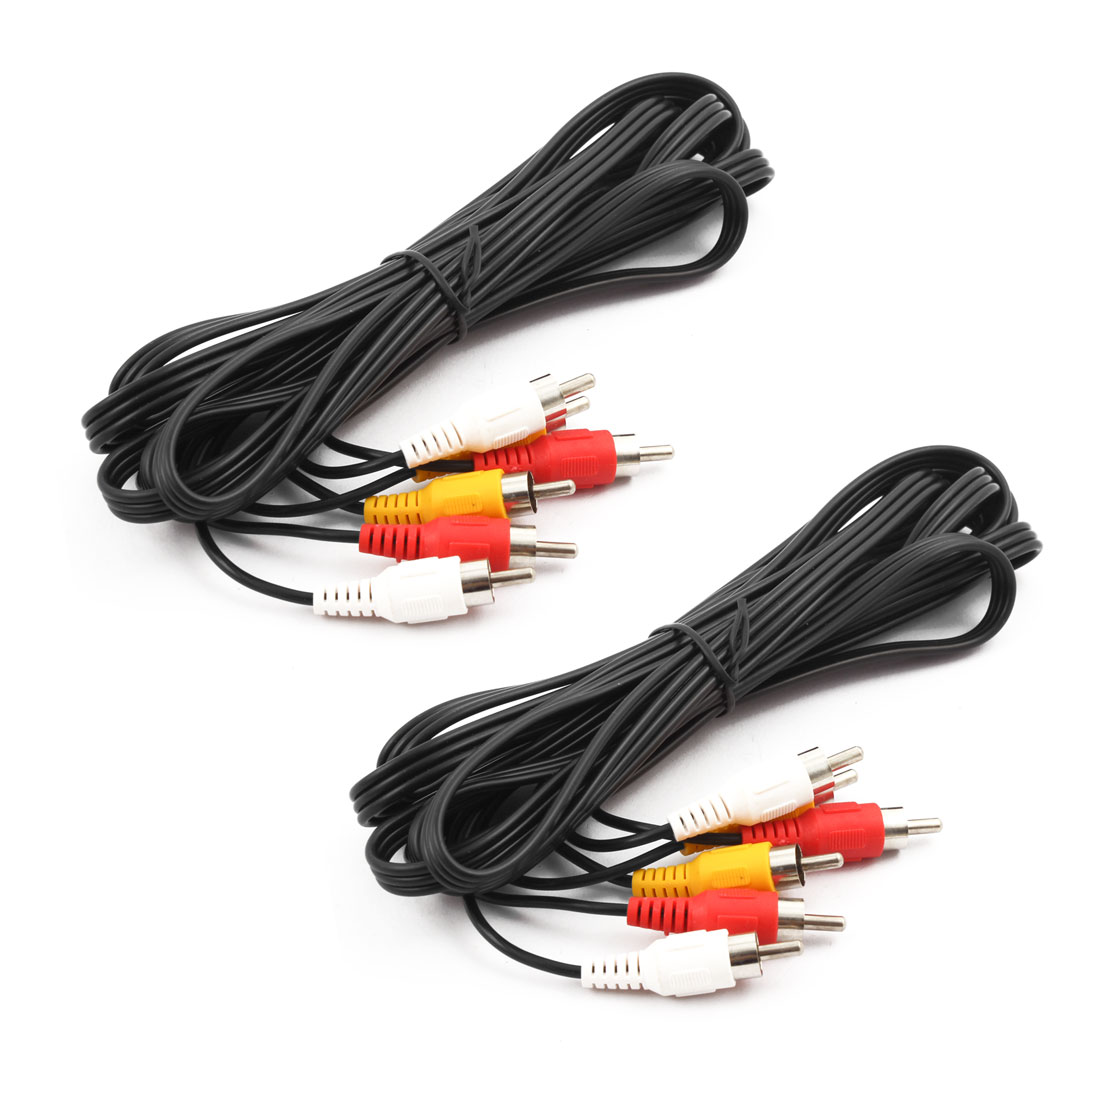 Universal 3 RCA Male to 3 RCA Male Audio Video Cable 10Ft Long 2pcs for DVD TV